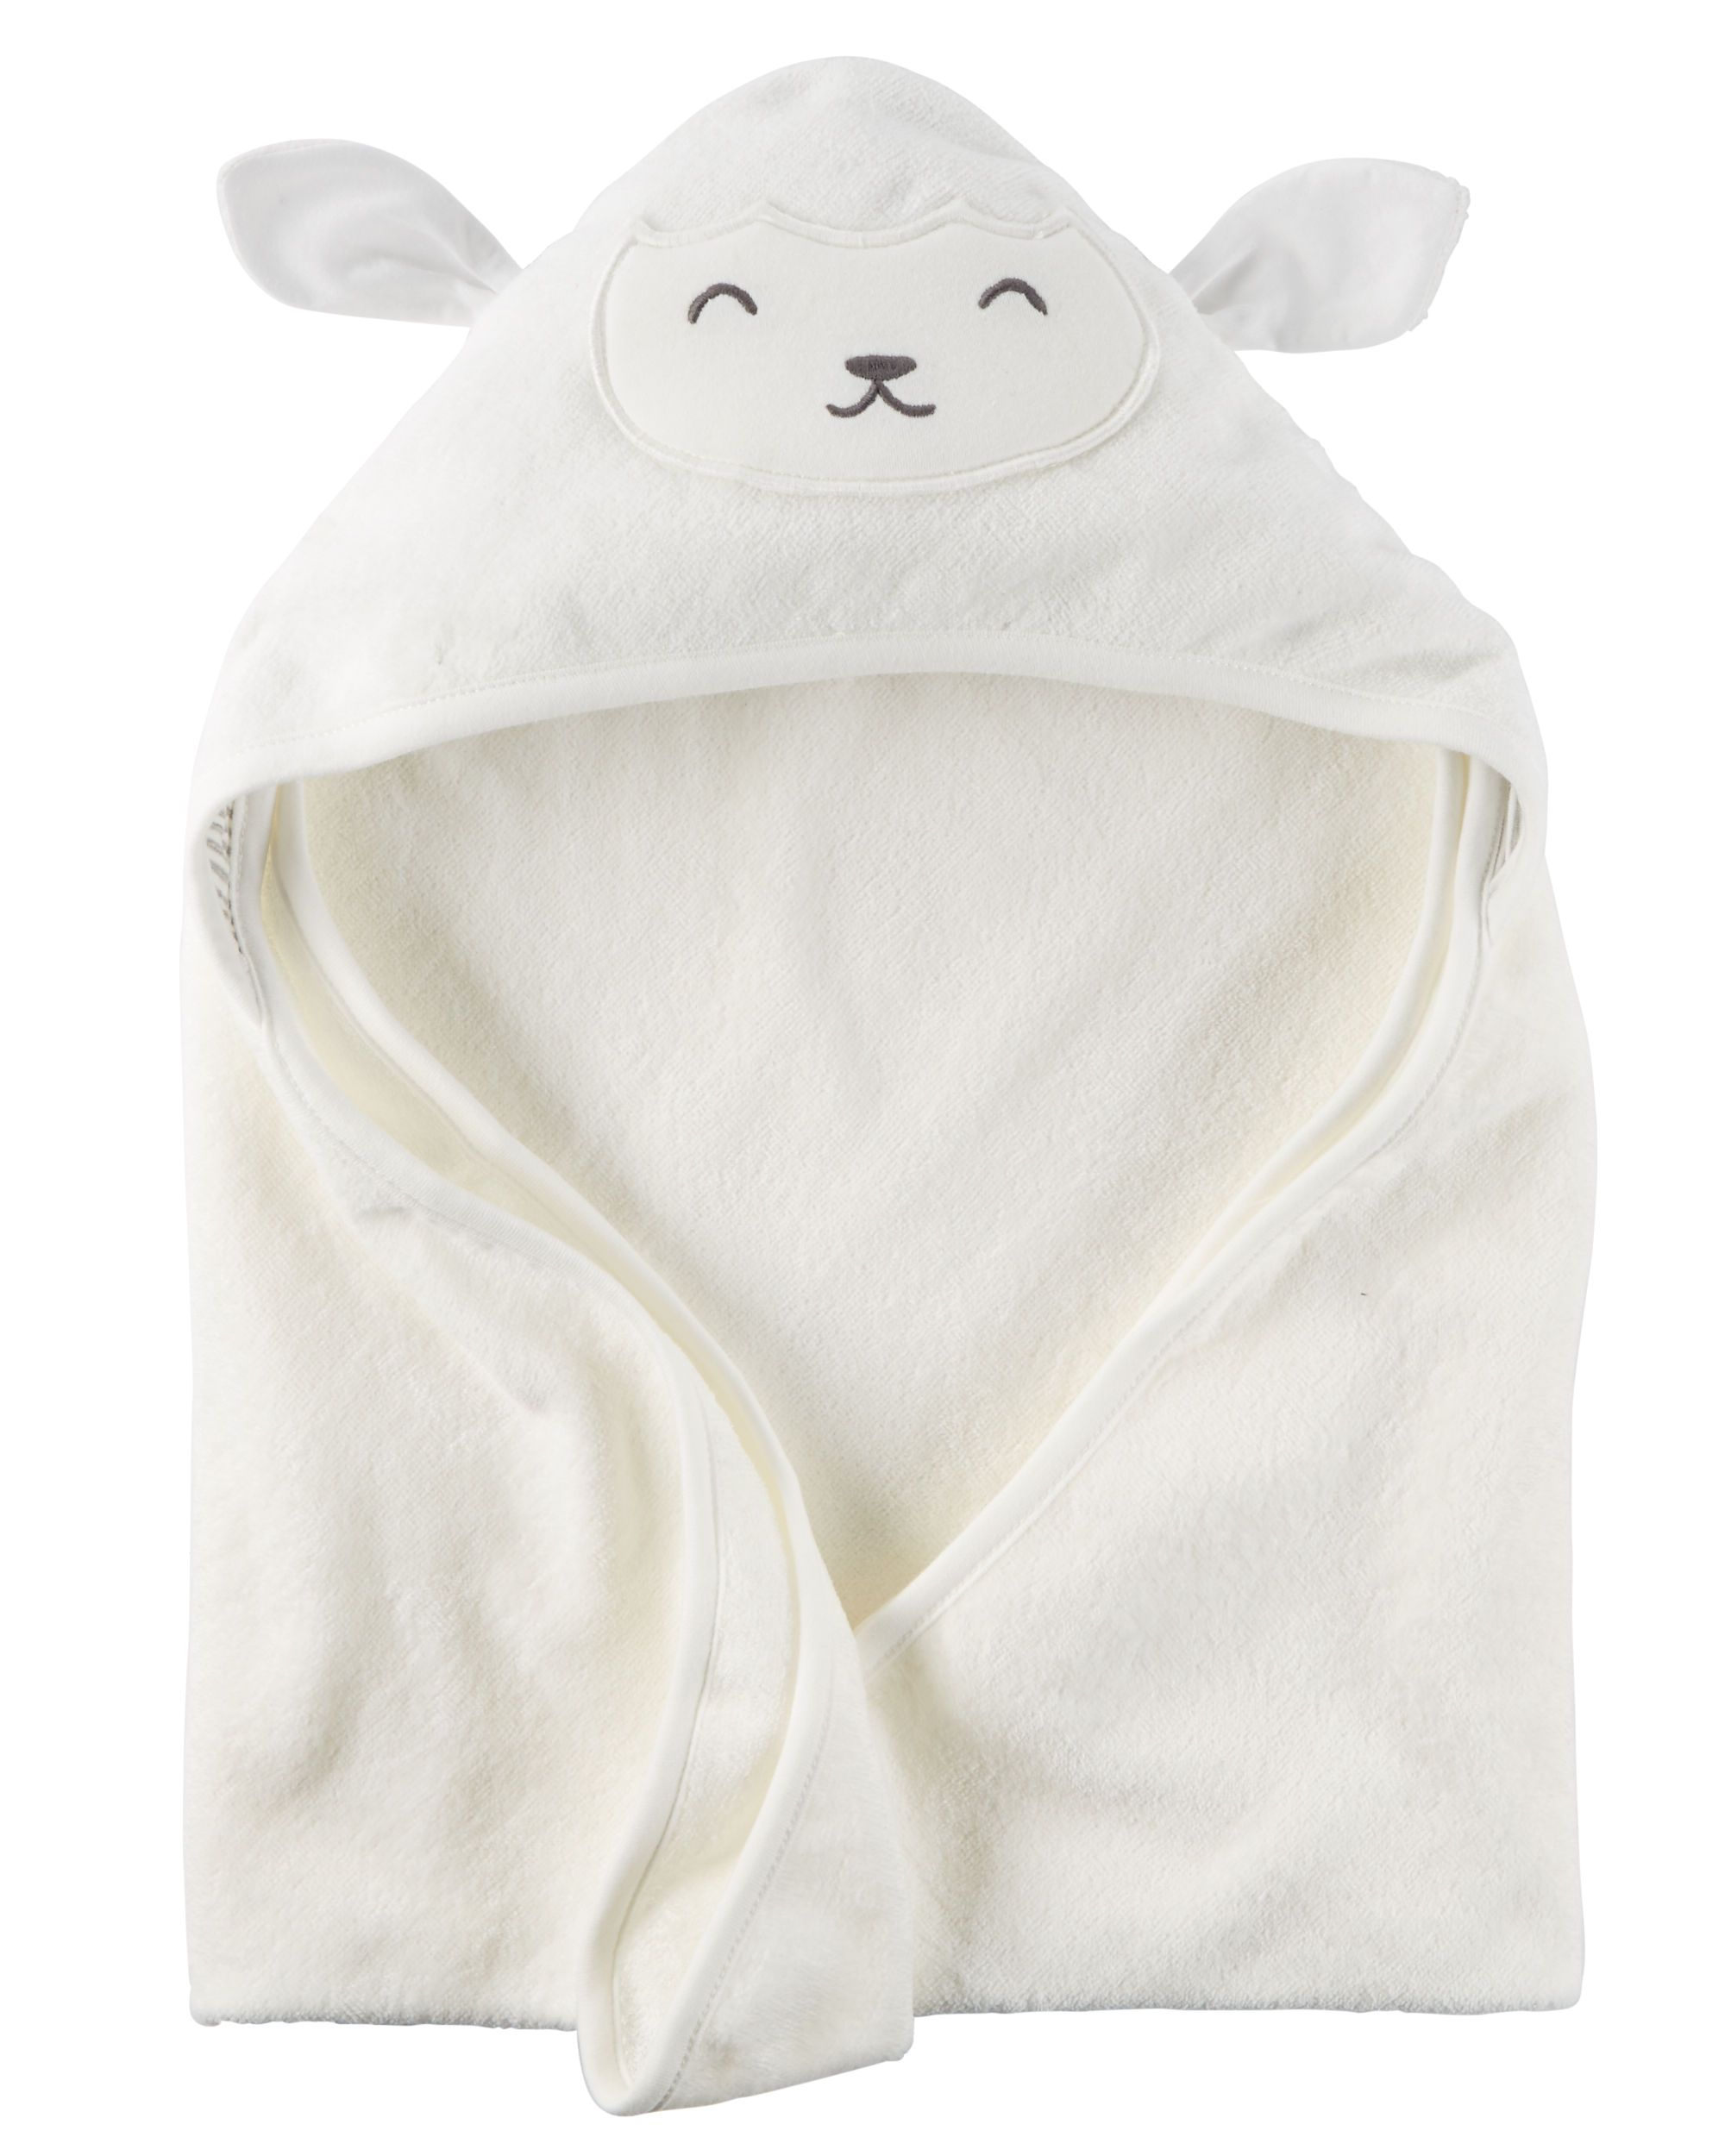 How To Build Baby S First Wardrobe Hooded Baby Towel Baby Bath